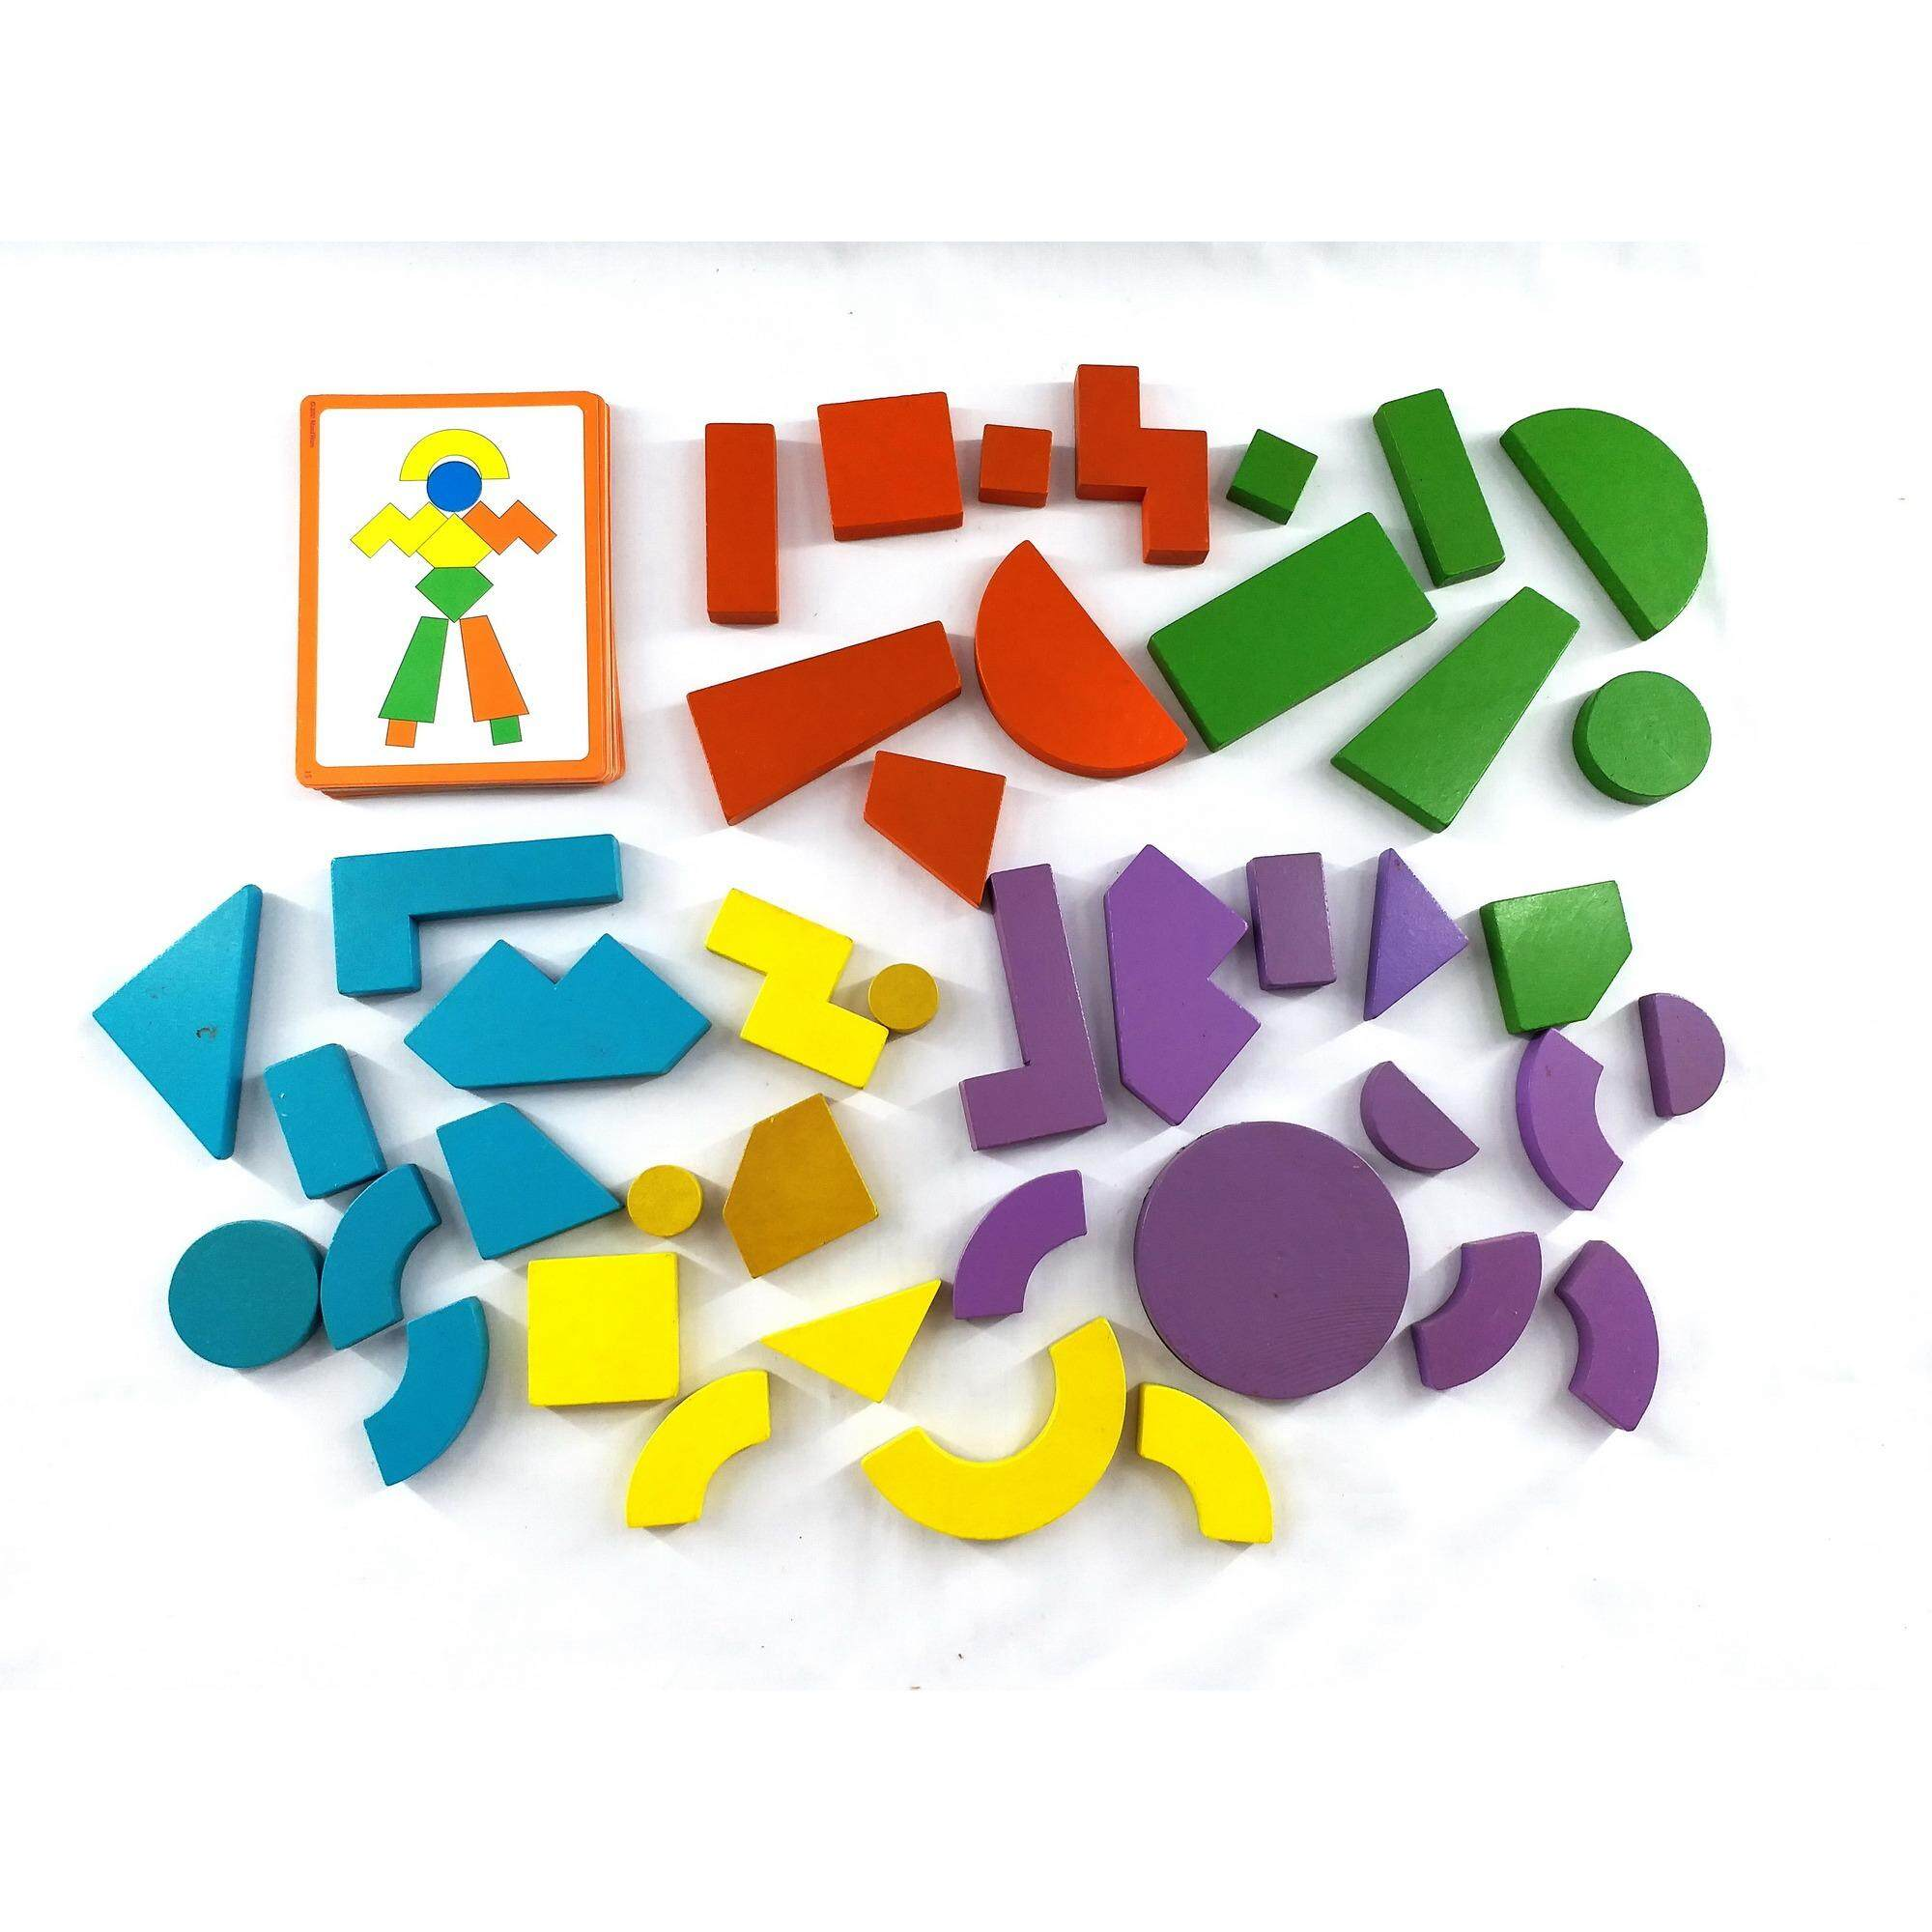 MDL-9986 42S MAGNETIC WOODEN WELL-CRAFTED BLOCKS x 1set Toys for boys